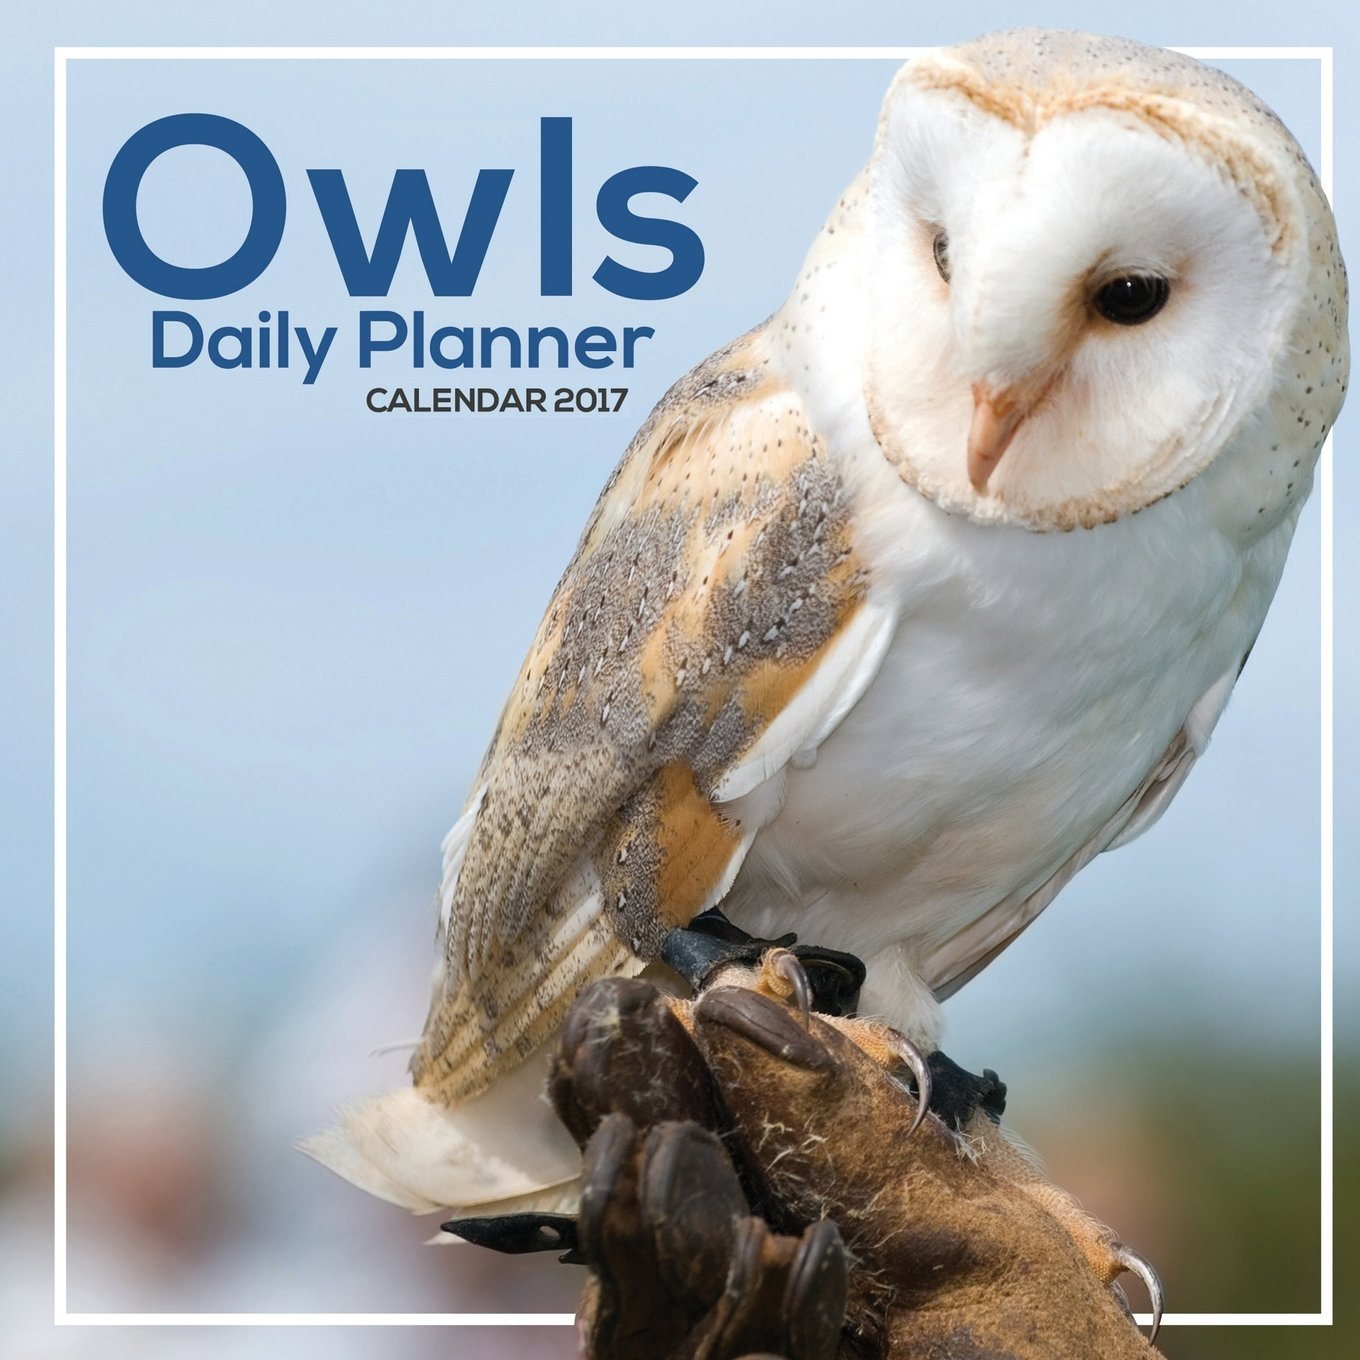 Download Owls Daily Planner Calendar 2017 pdf